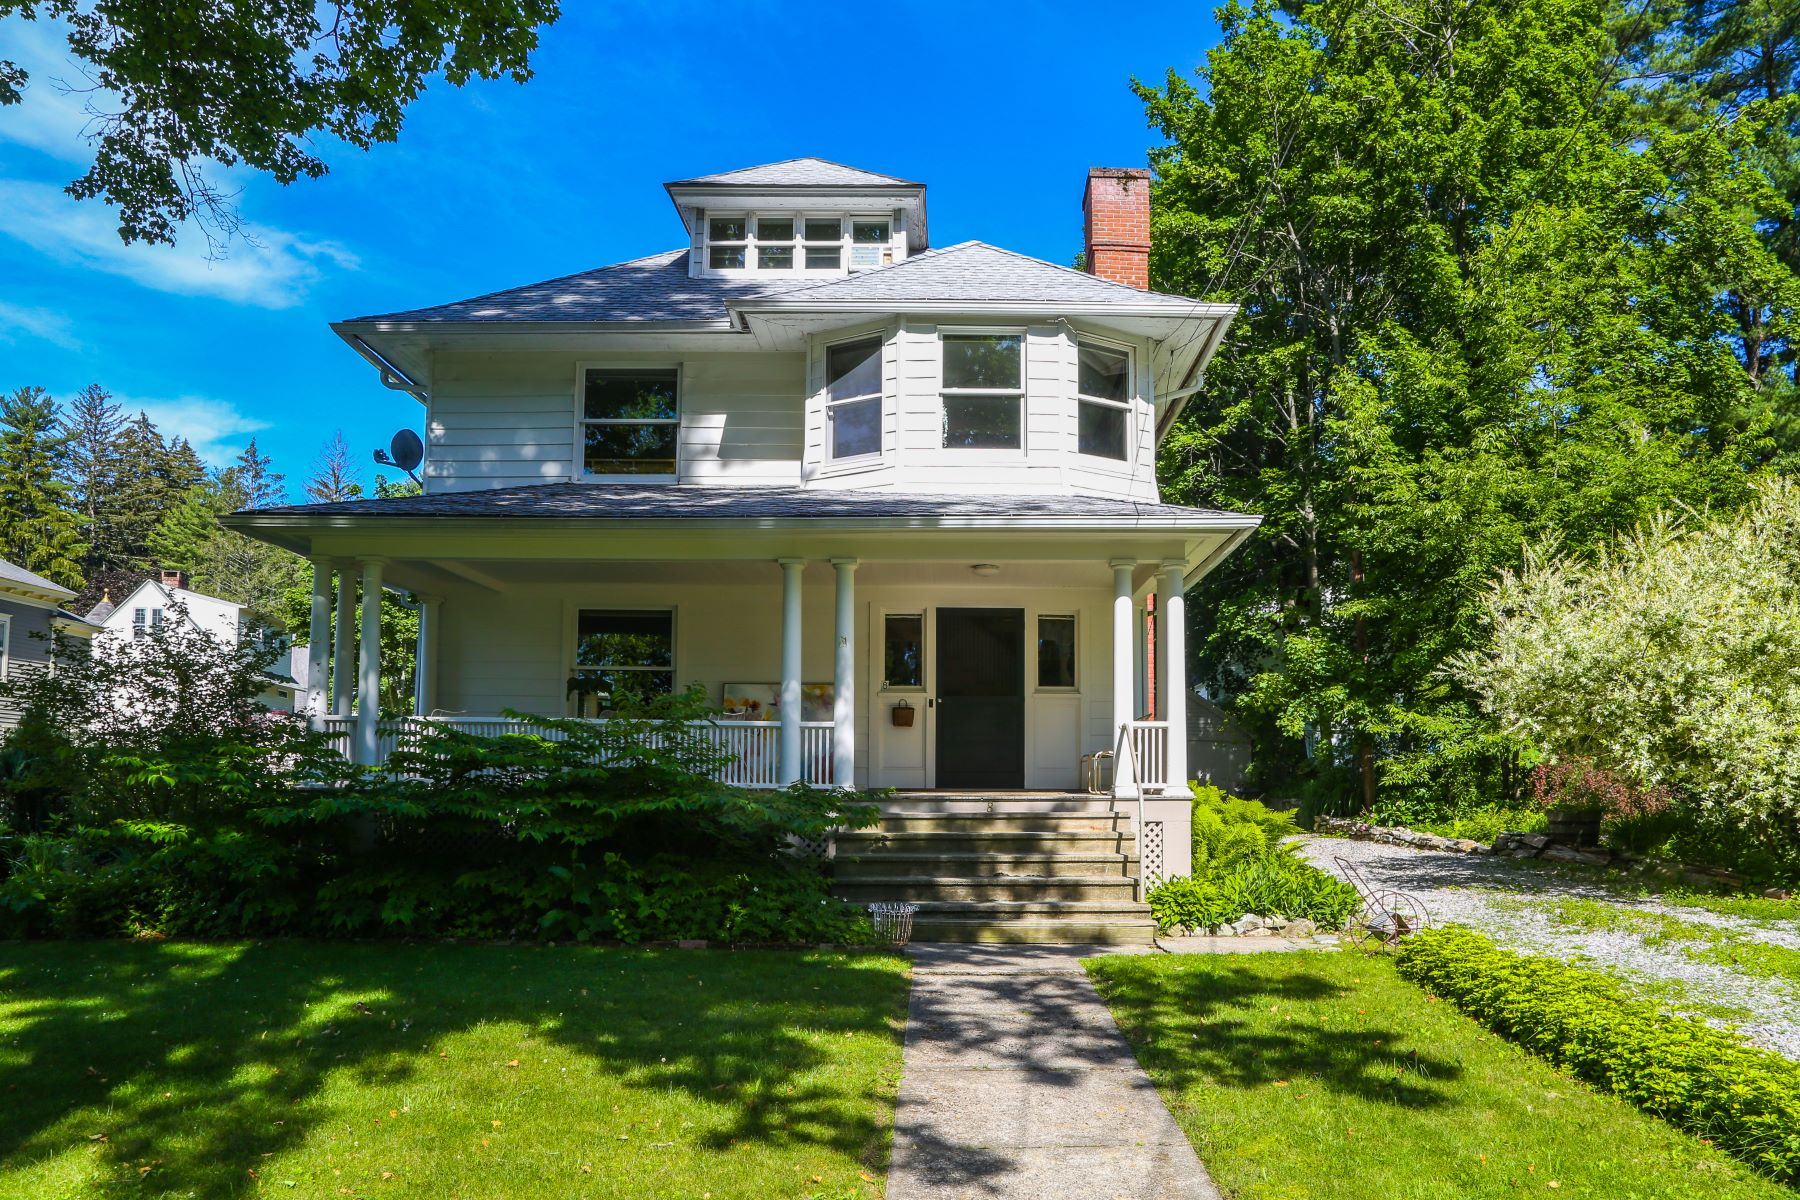 Maison unifamiliale pour l Vente à Beautifully Maintained American Foursquare on The Hill 8 Oak St Great Barrington, Massachusetts, 01230 États-Unis